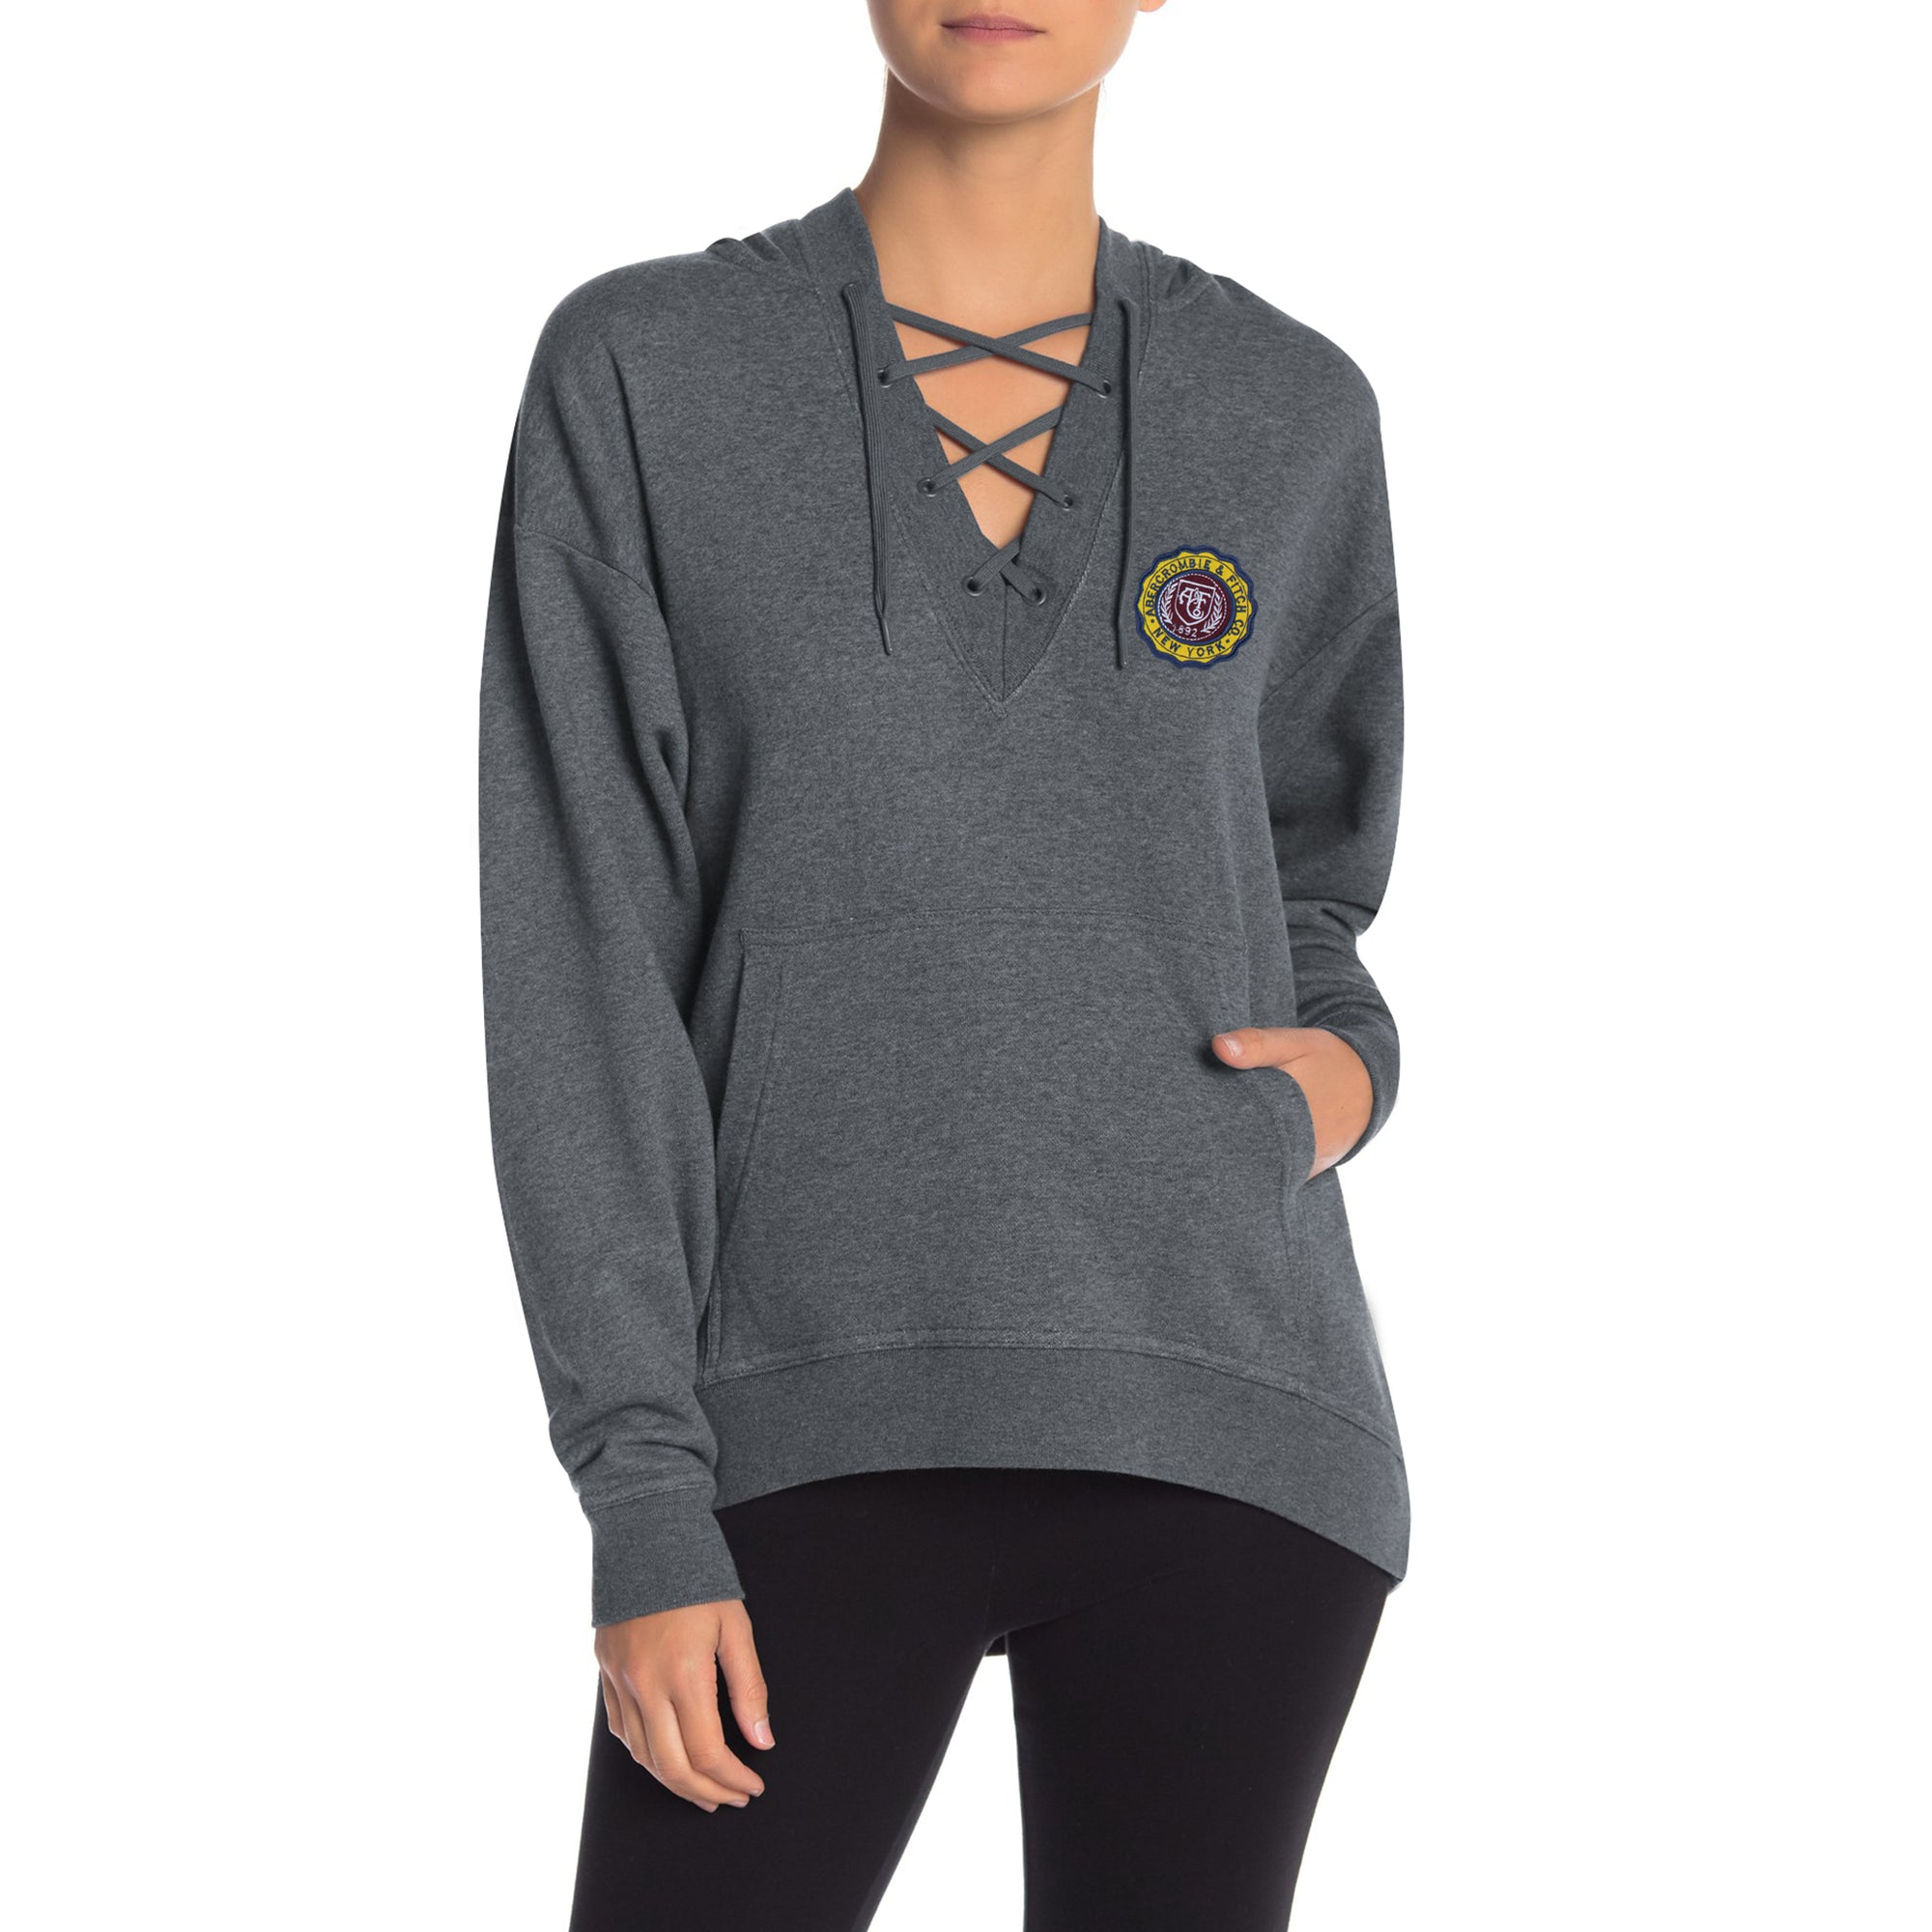 A&F Terry Fleece V Neck Stylish Pullover Hoodie For Ladies-Charcoal Melange-BE6963